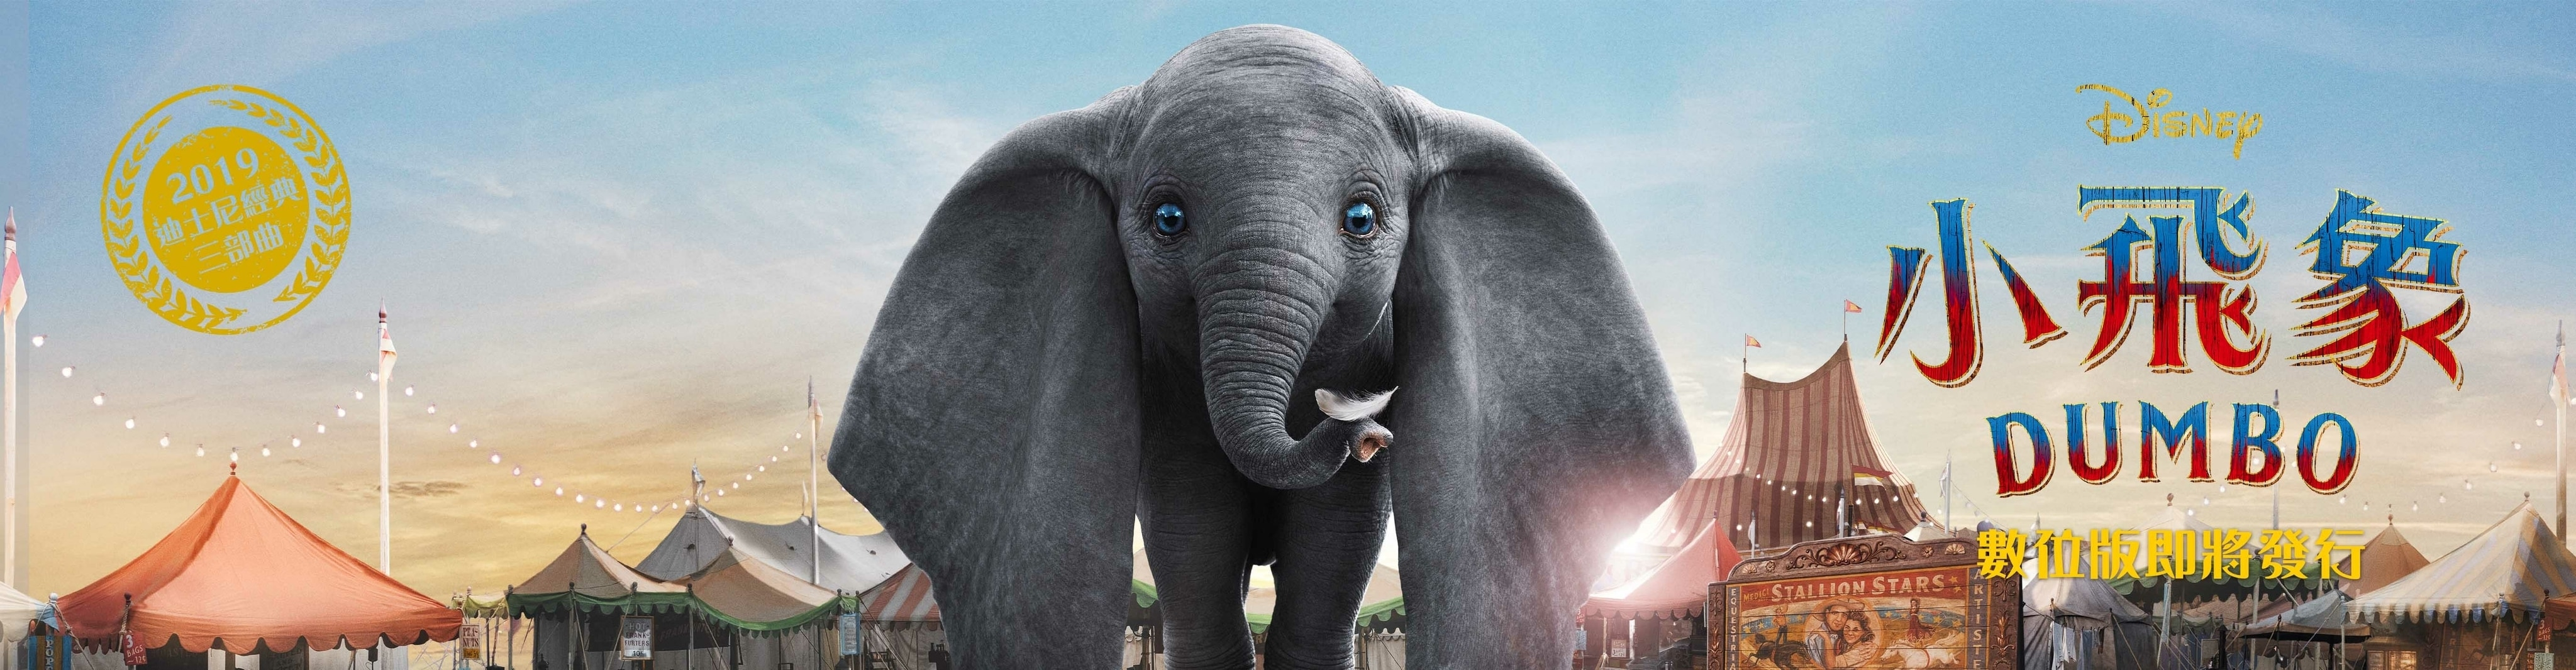 The Dumbo | Available on DVD, Blu-Ray & Digital Download